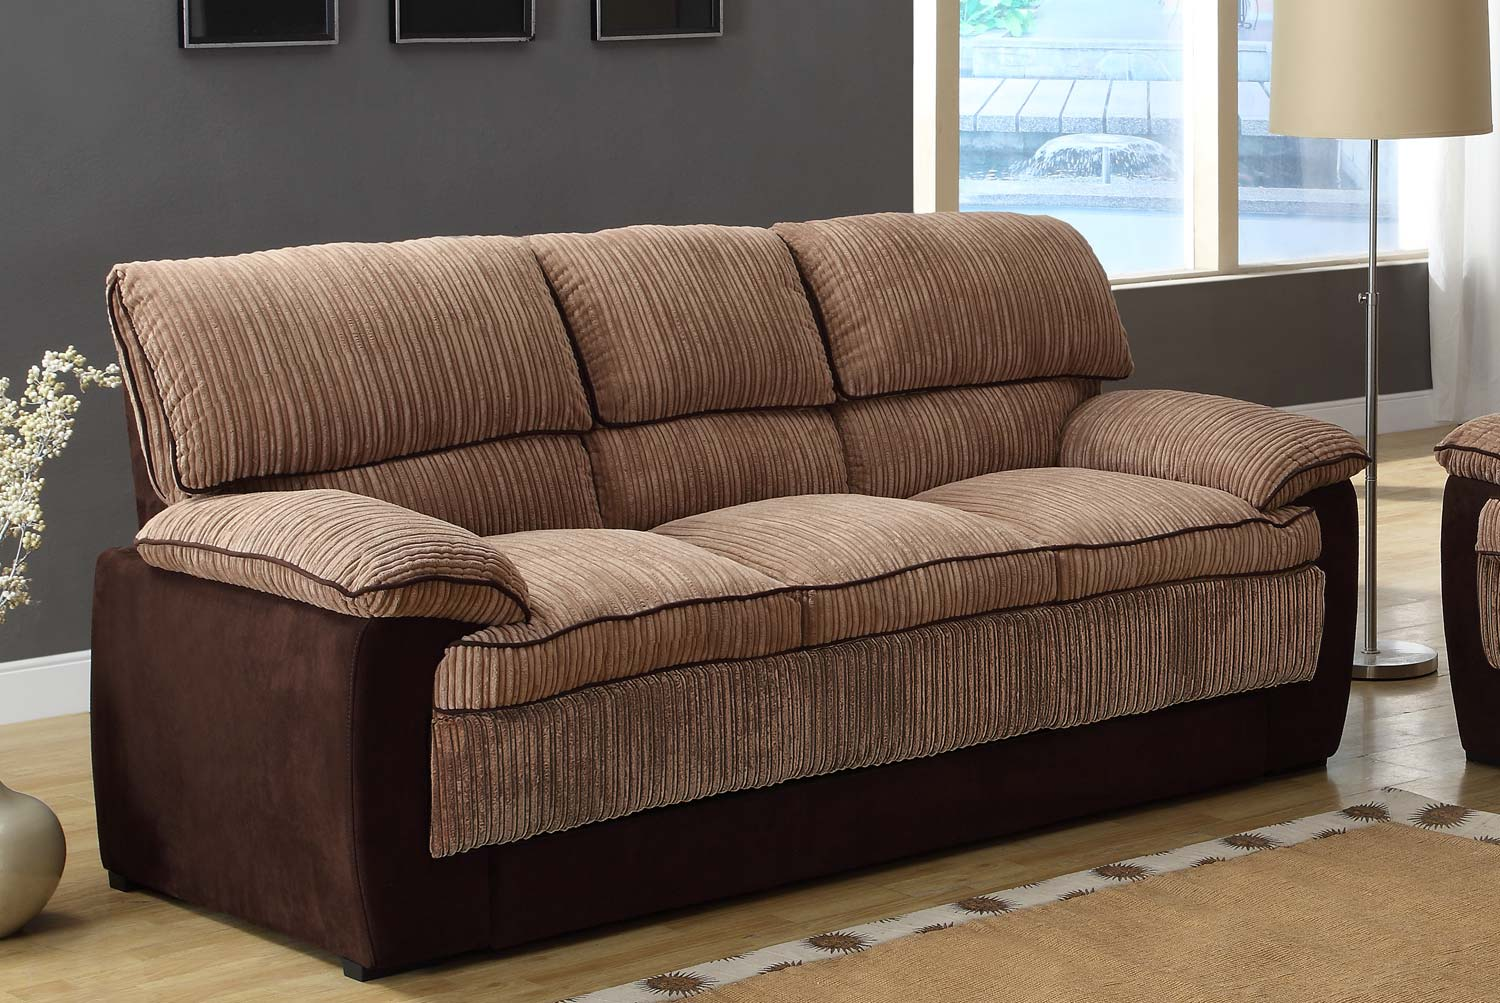 Sofa Sofa Recliner Sofa Covers A Comfortable Look With Elegance